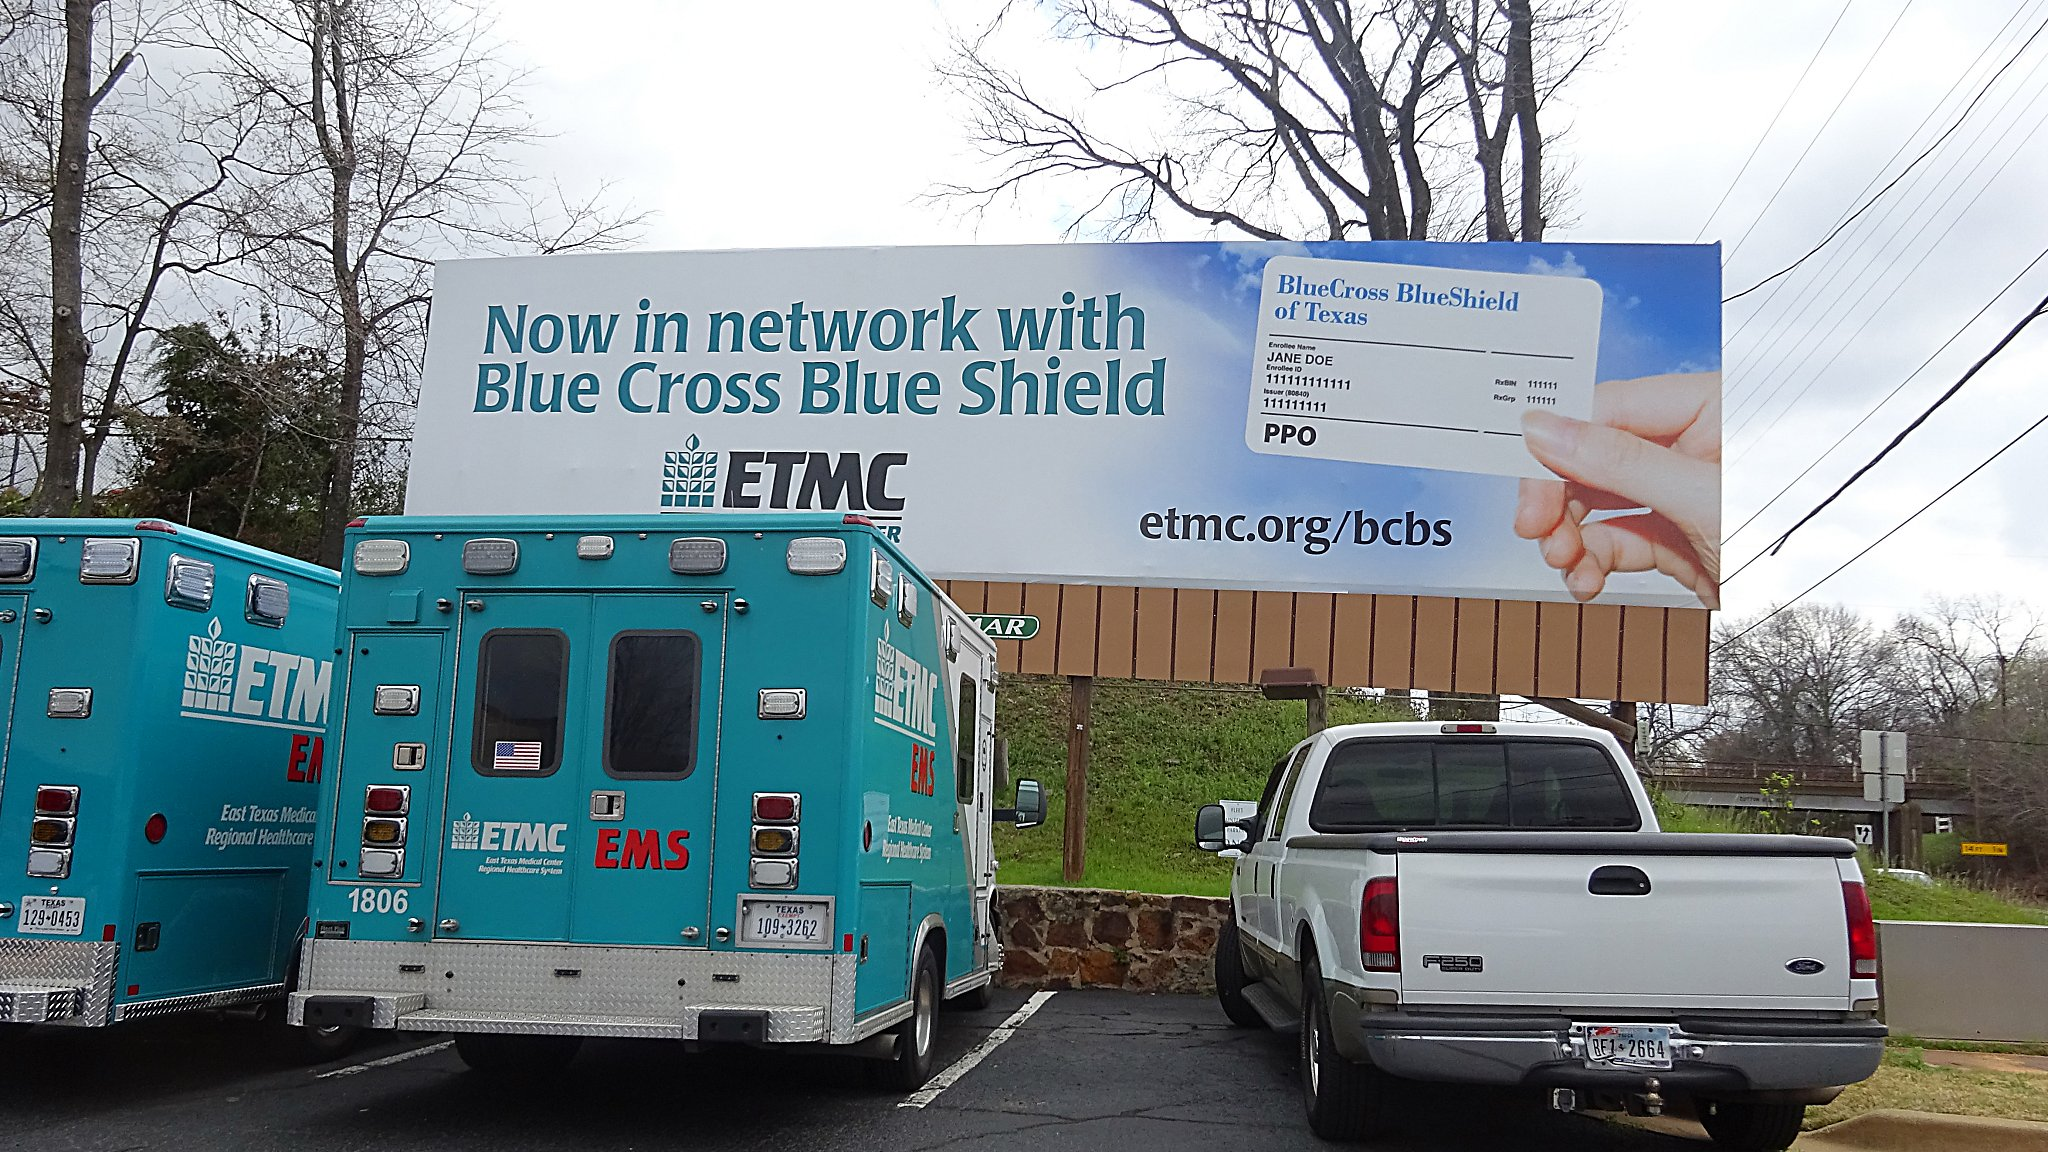 Confused about Blue Cross Blue Shield's new ER policy